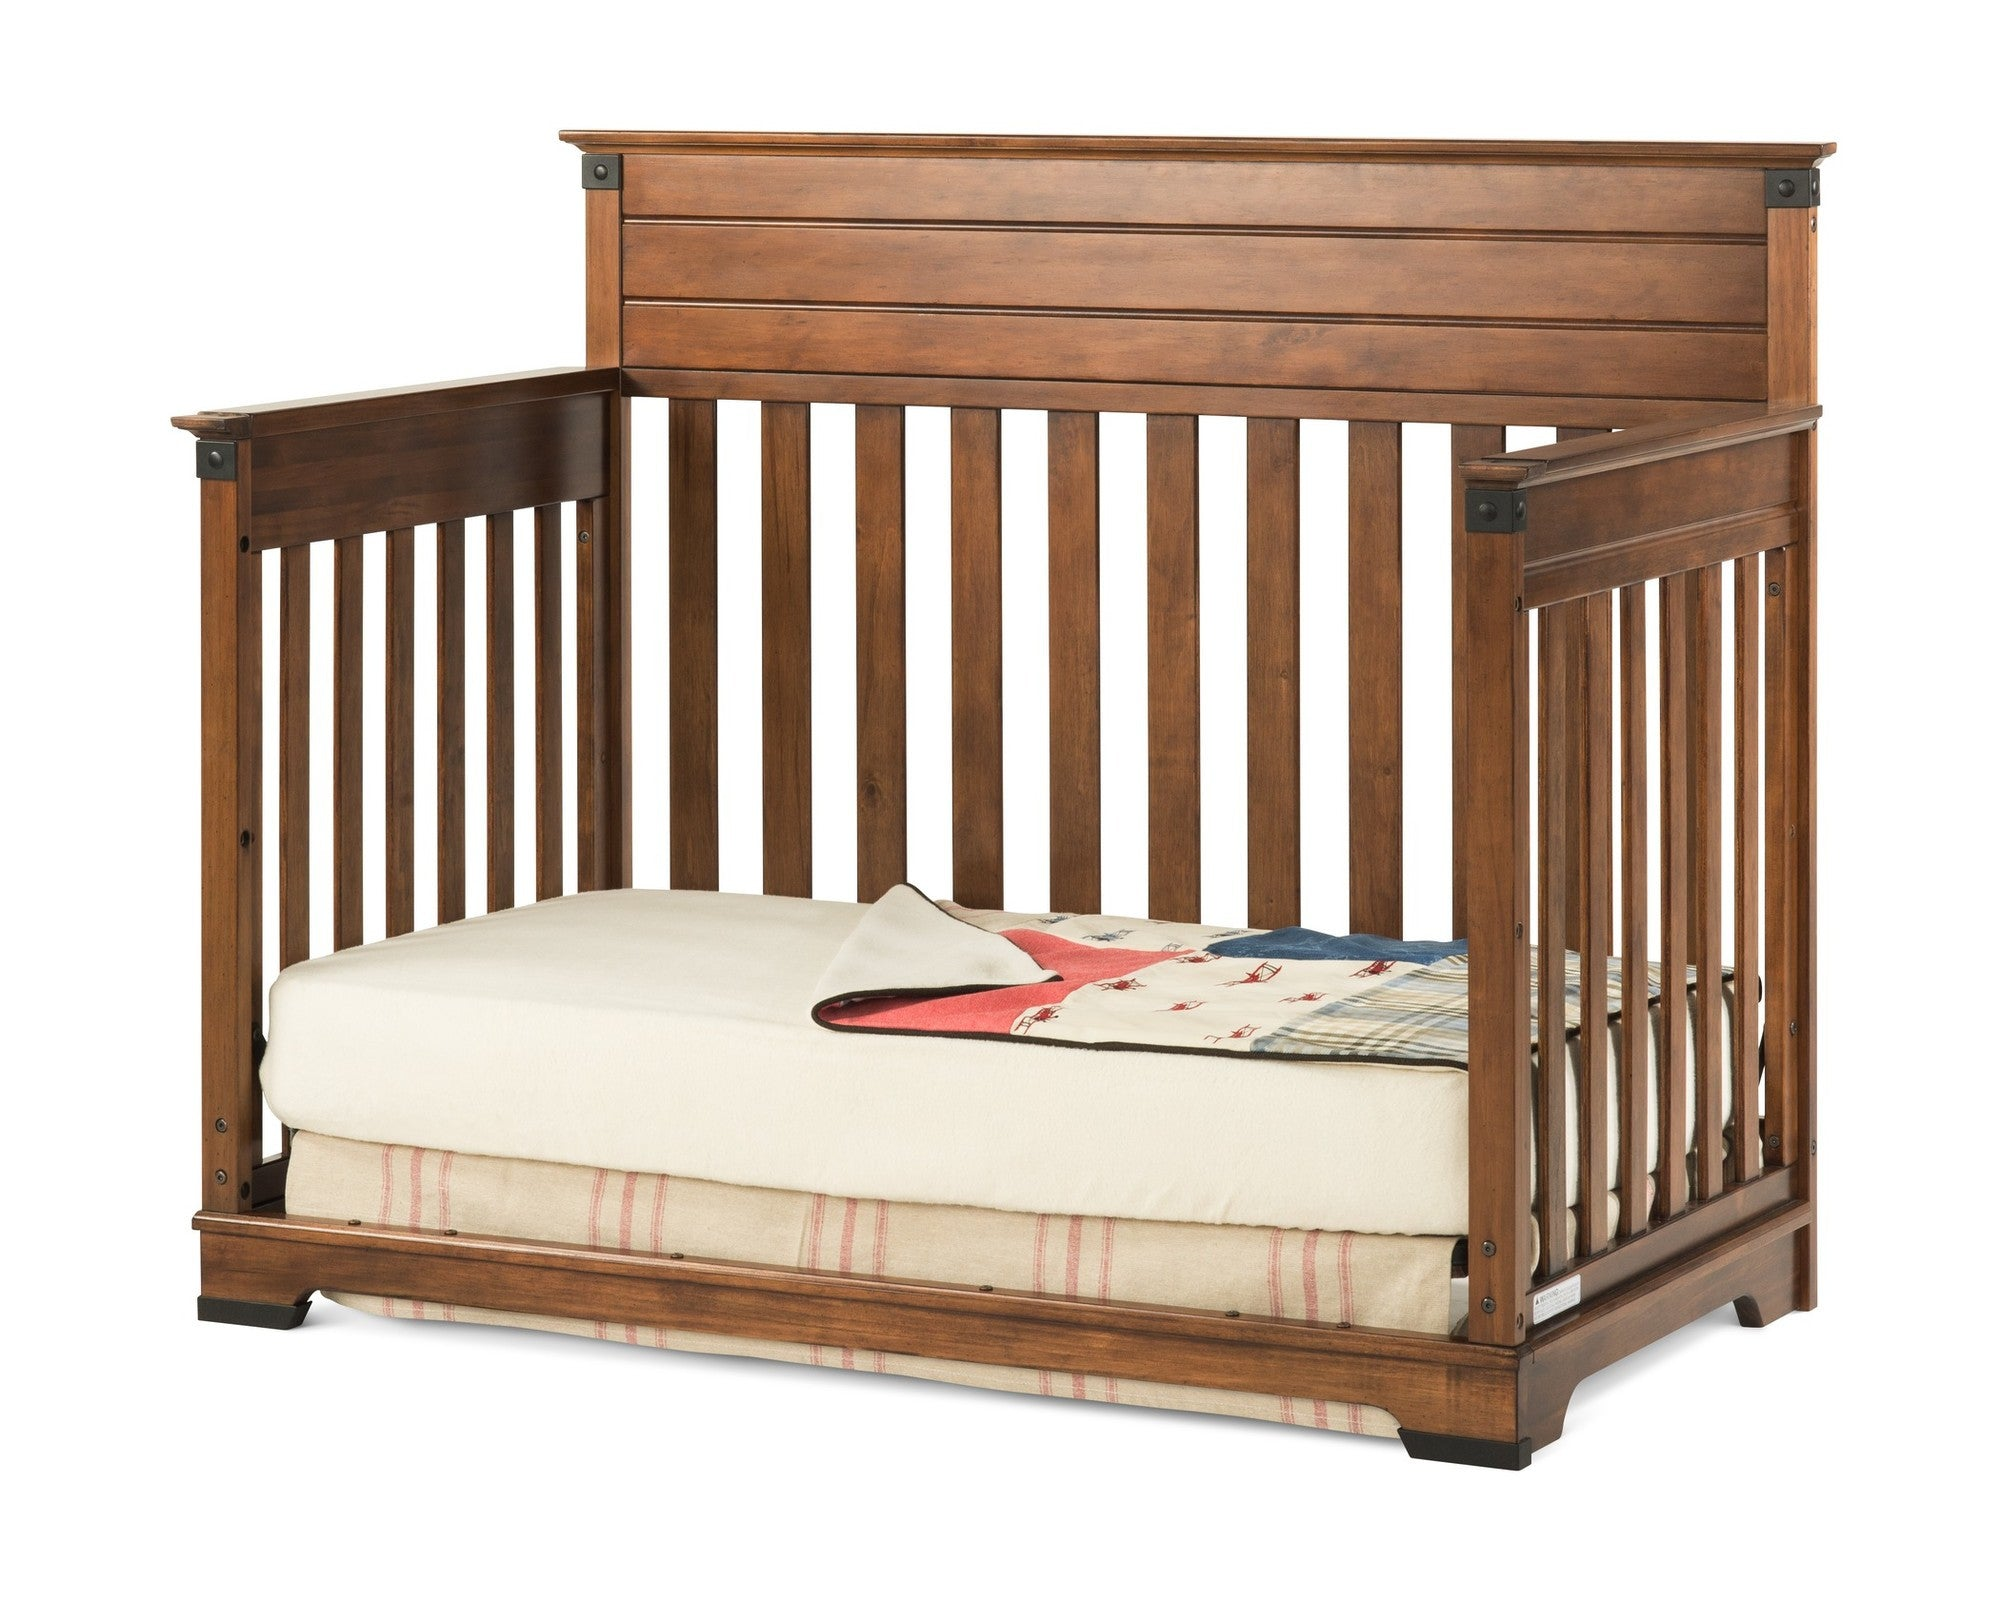 convertible wayfair nursery furniture cribs crafting reviews craft camden in crib child